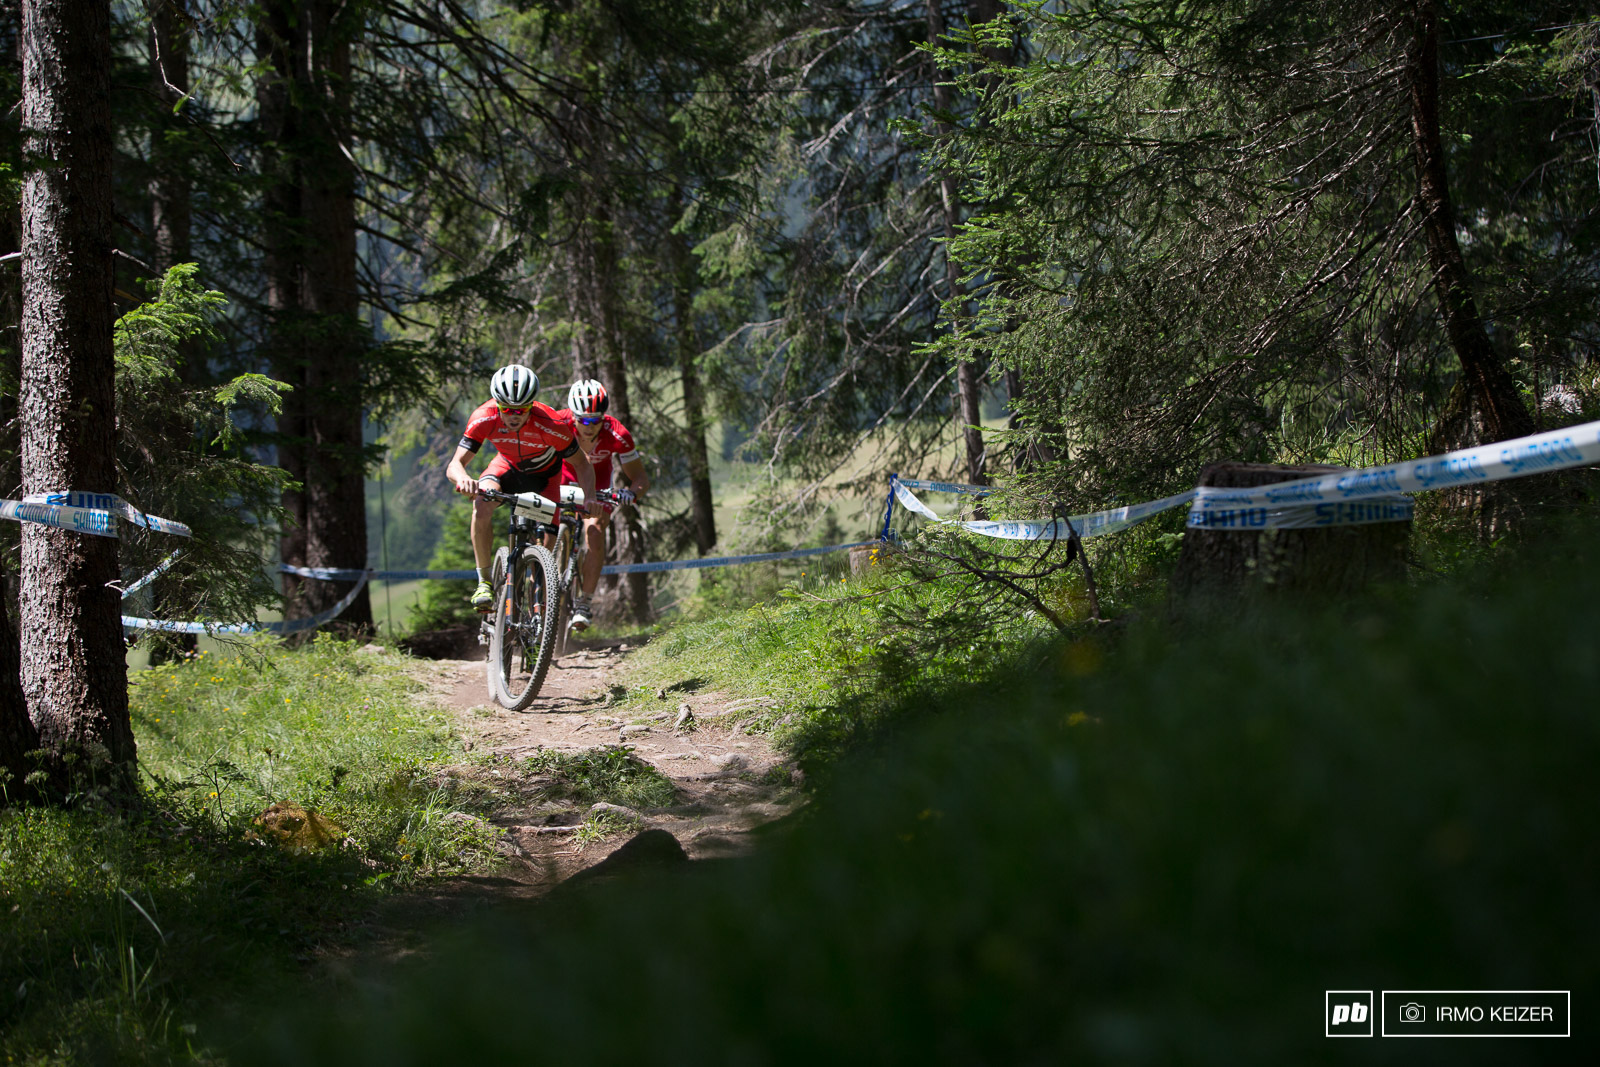 Matthias Flueckiger and Nino Schurter lead the first lap.